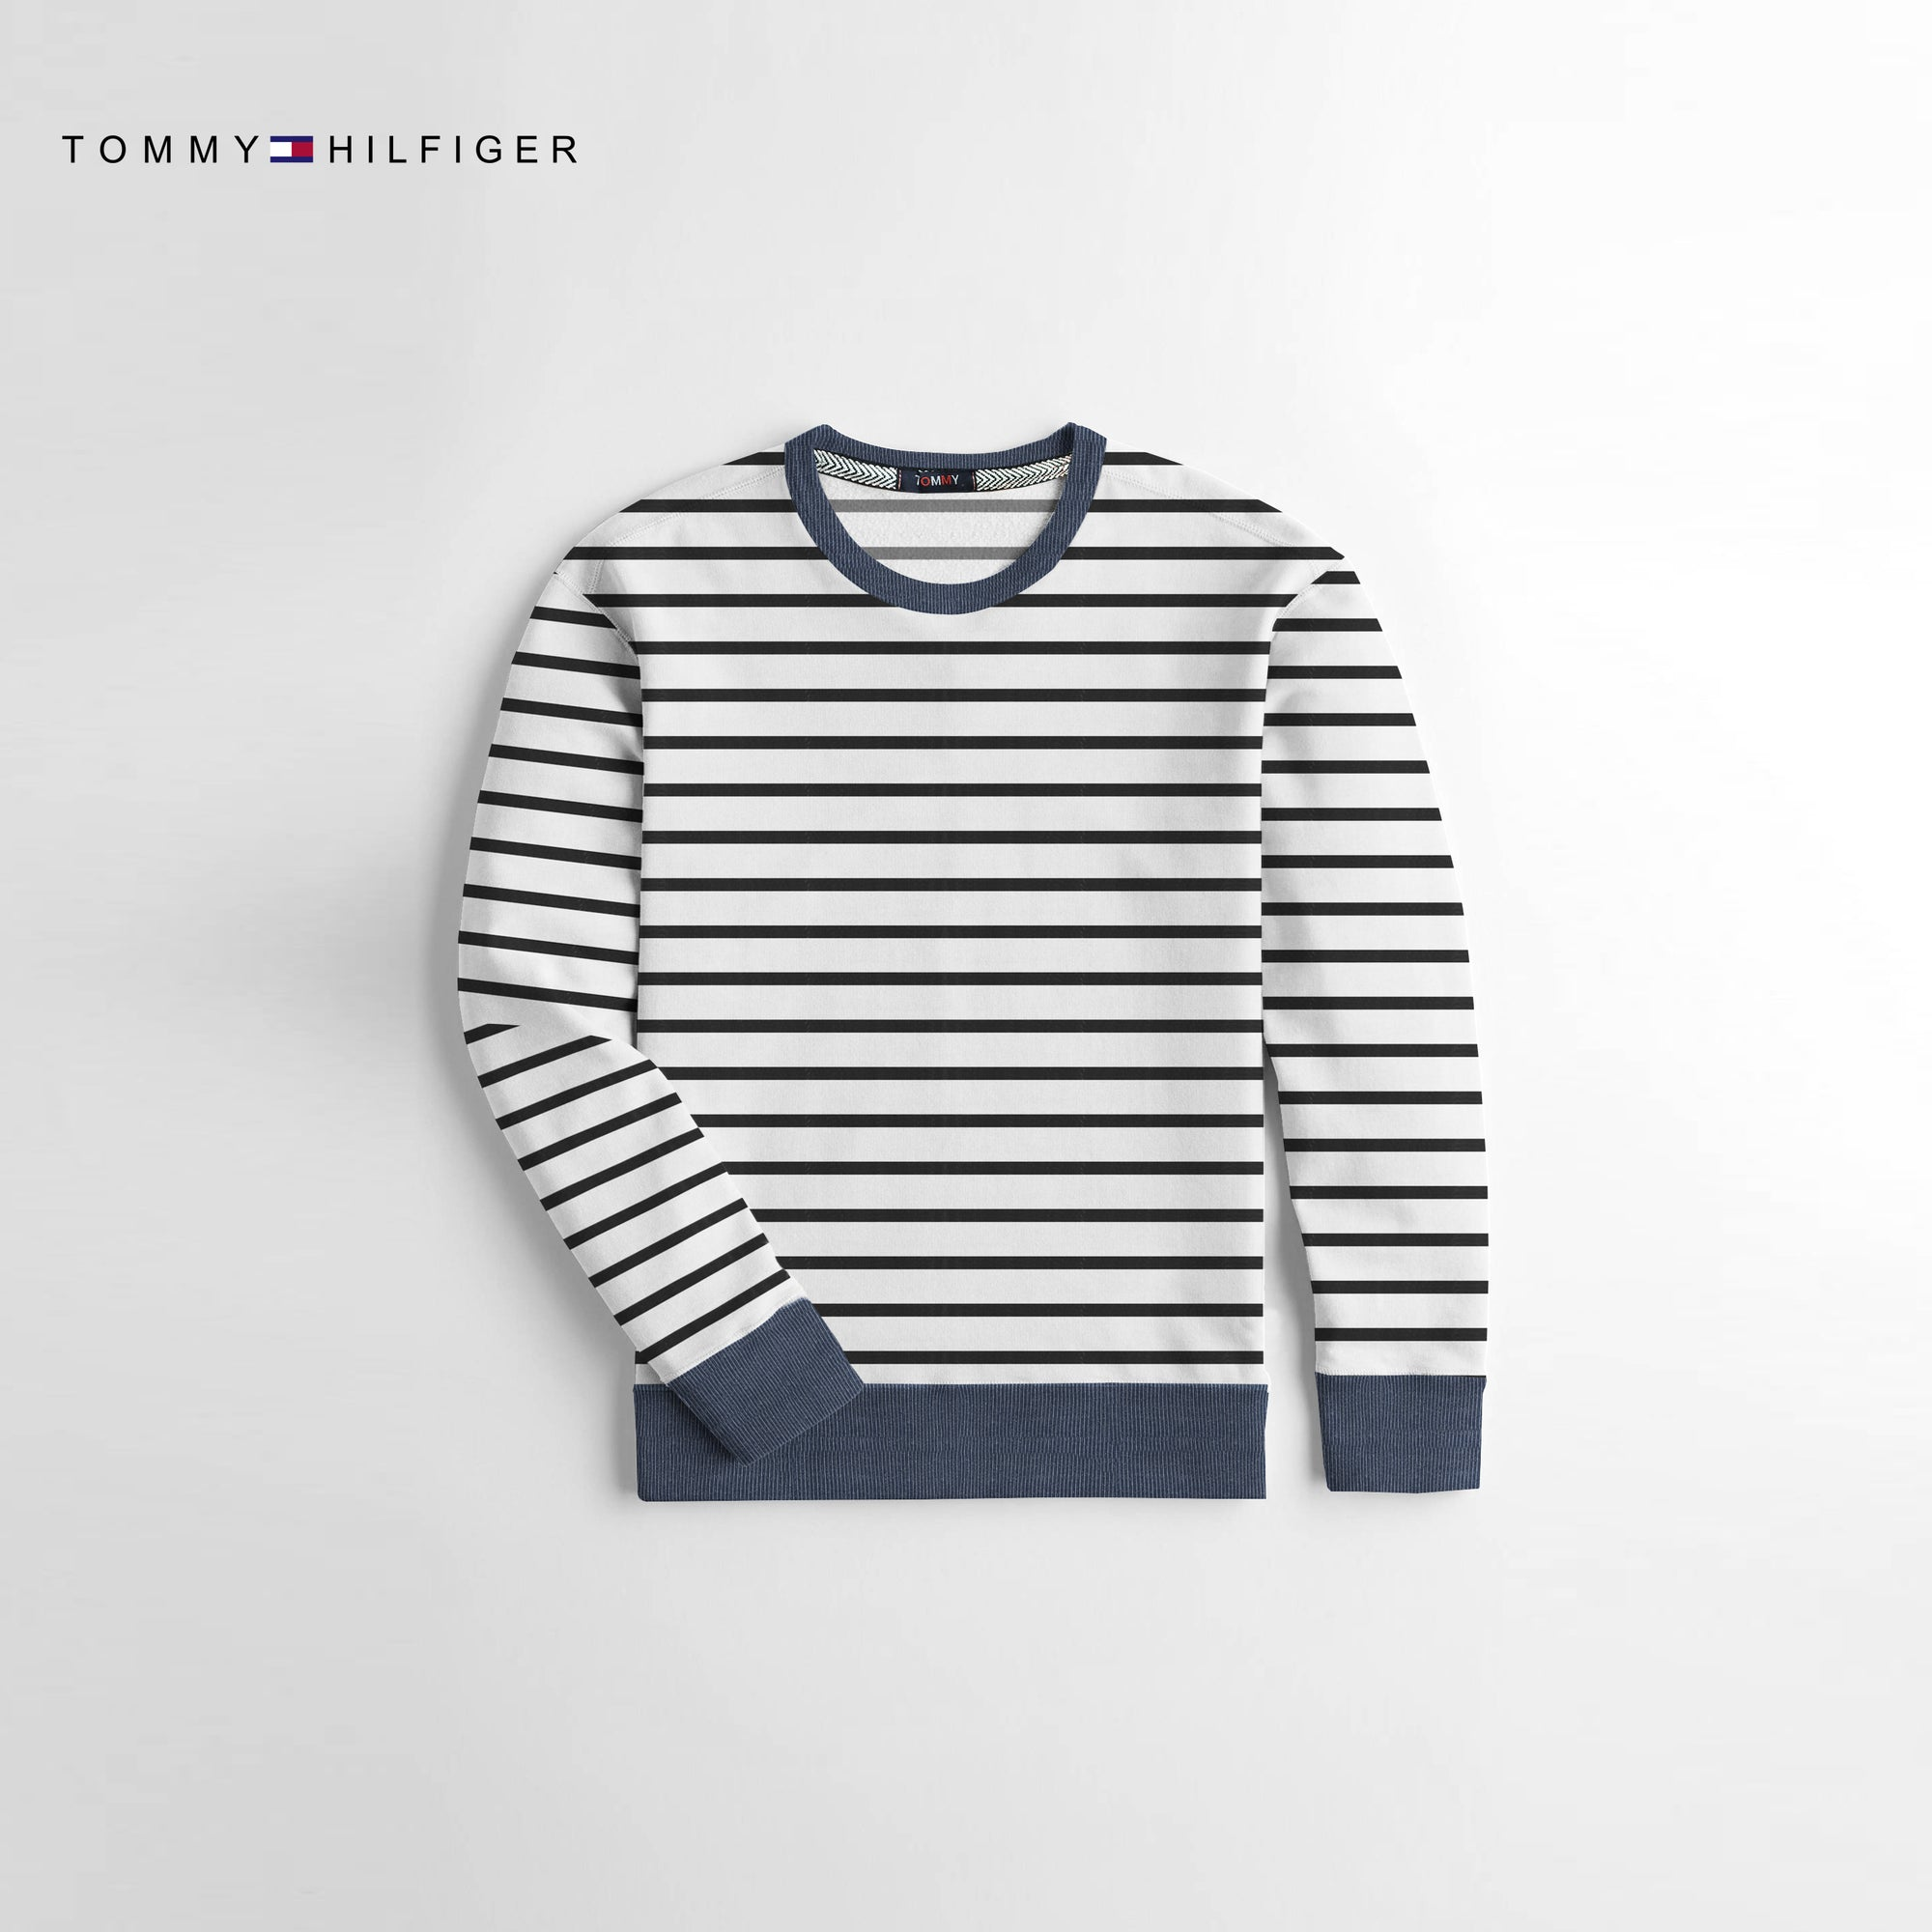 Tommy Hilfiger Crew Neck Fleece Sweatshirt For Kids-Black & White Striper-NA10664